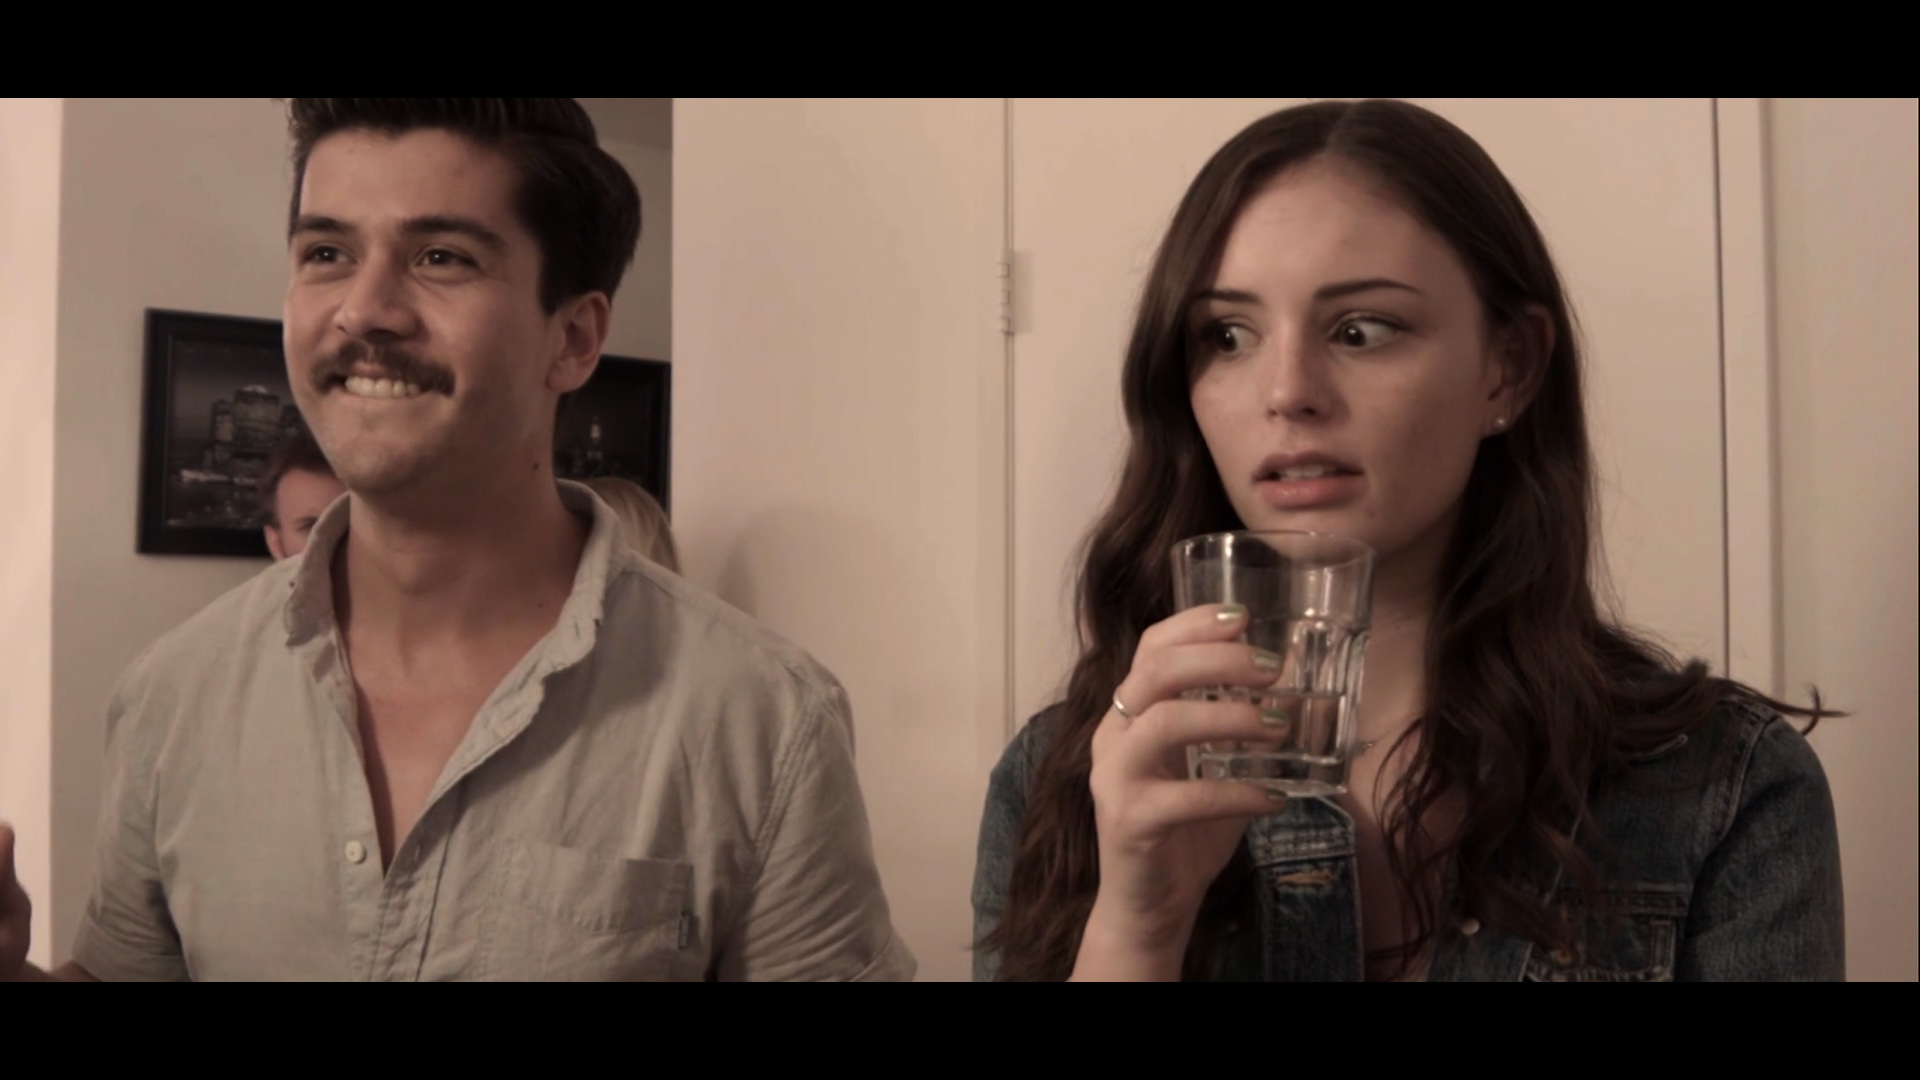 Spin the bottle  (2018) -Producer, Director, Writer-  A surprise spin the bottle game pushes a young woman to kiss her crush. Originally a spec commercial for the Moet moments competition